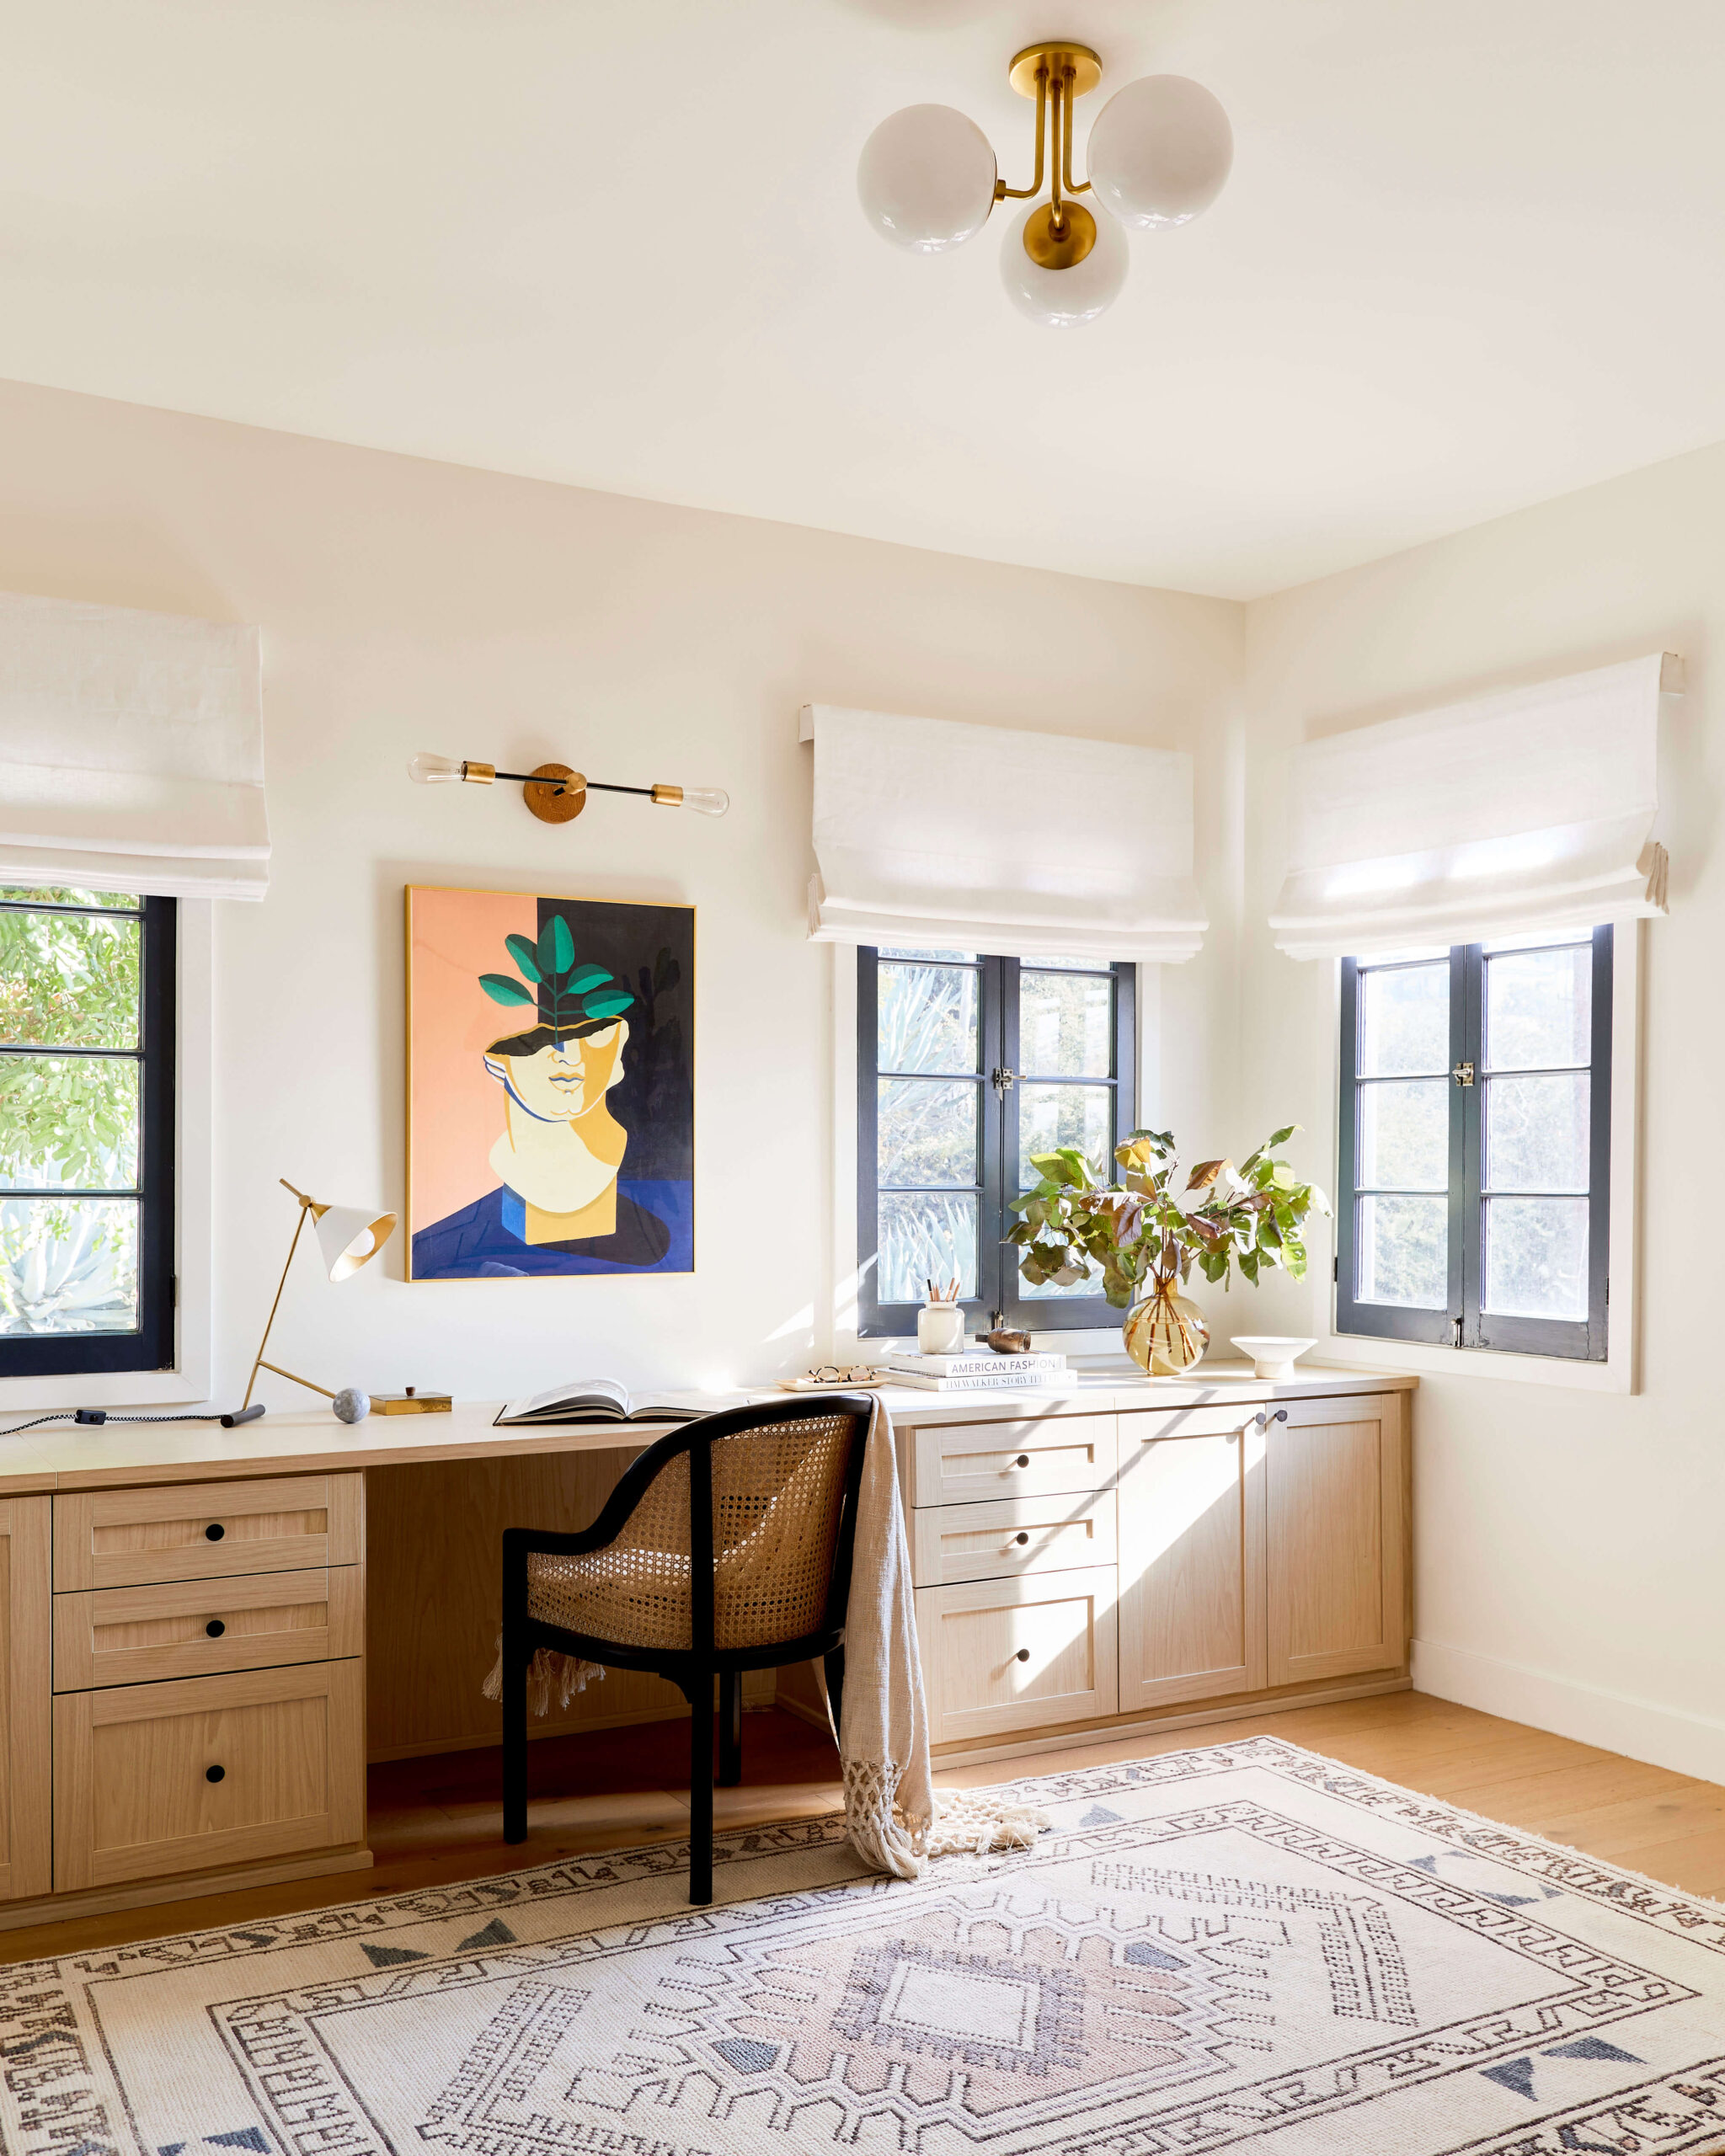 GINNY_MACDONALD_JACLYN_JOHNSON_OFFICE_BUILT-IN_CABINETS